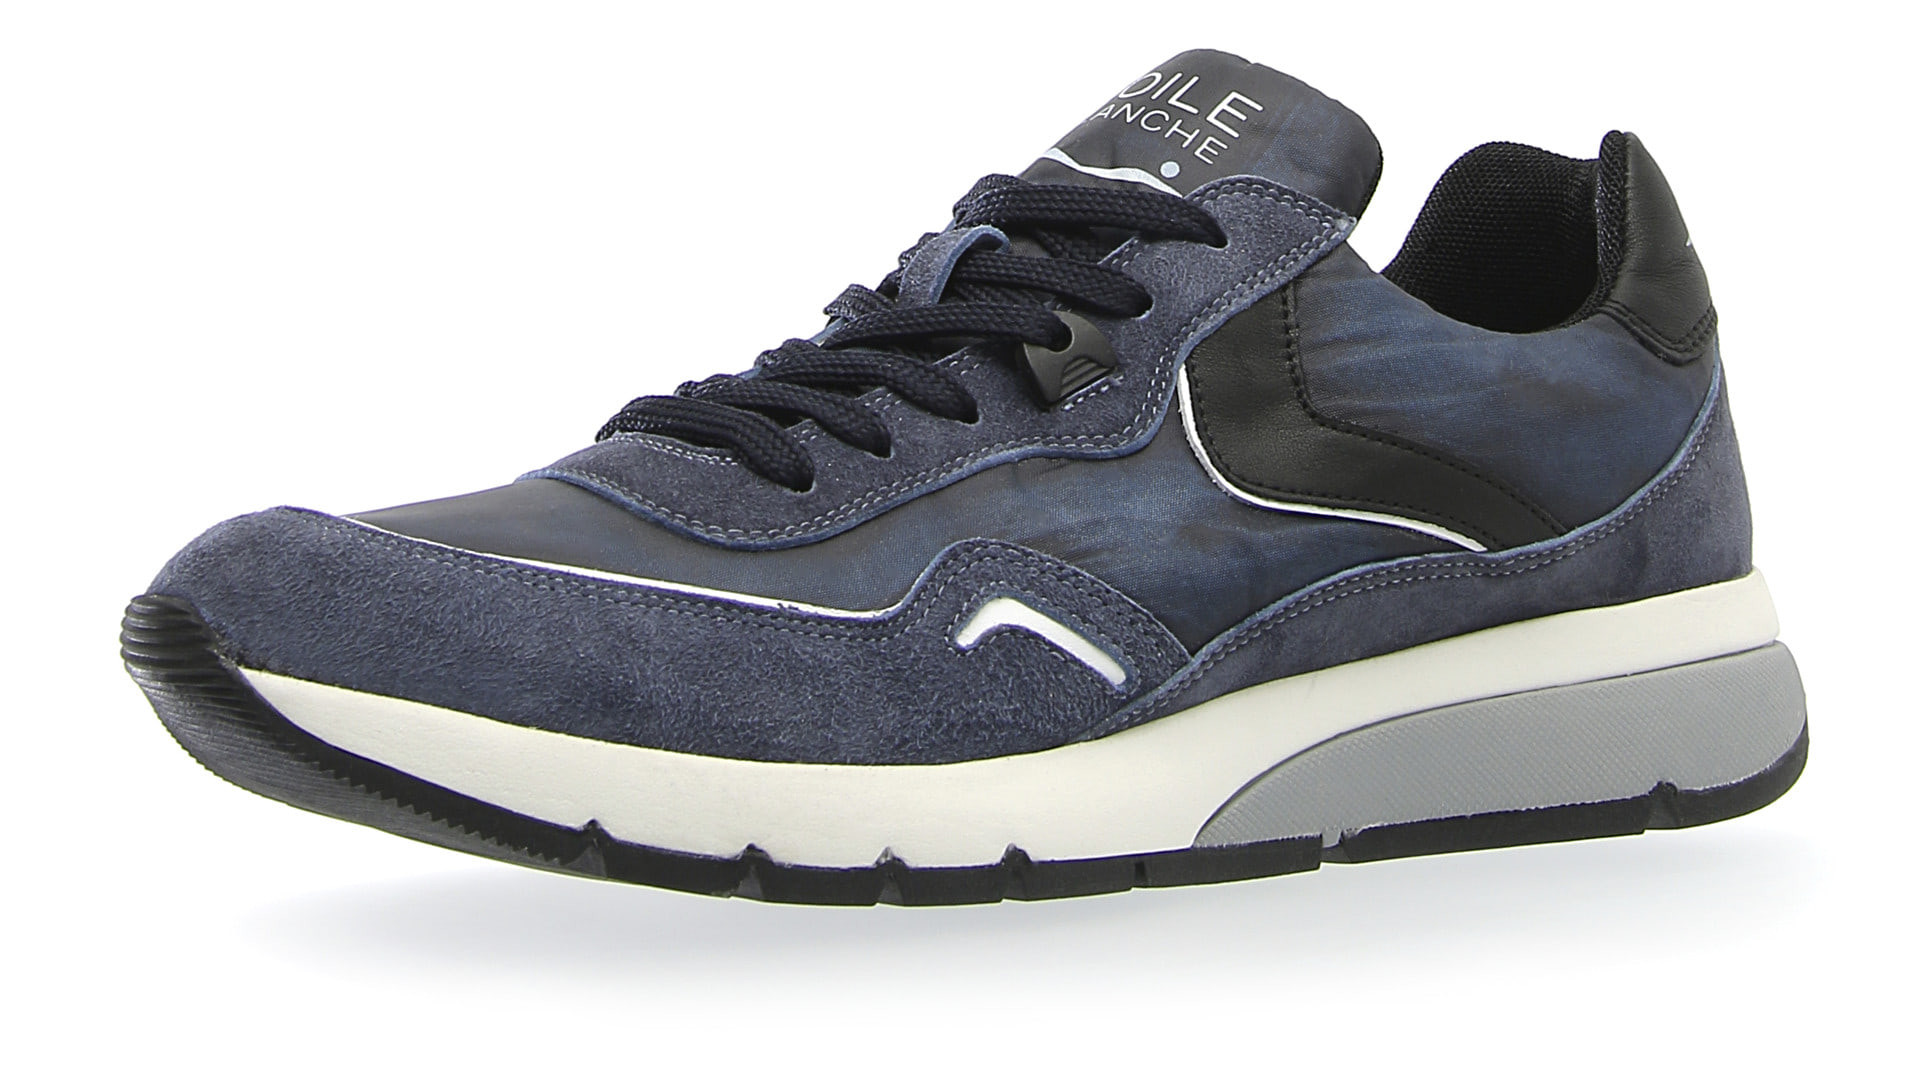 Voile Blanche ENDAVOUR - Sneakers uomo - Blu 9b7f733cfd9